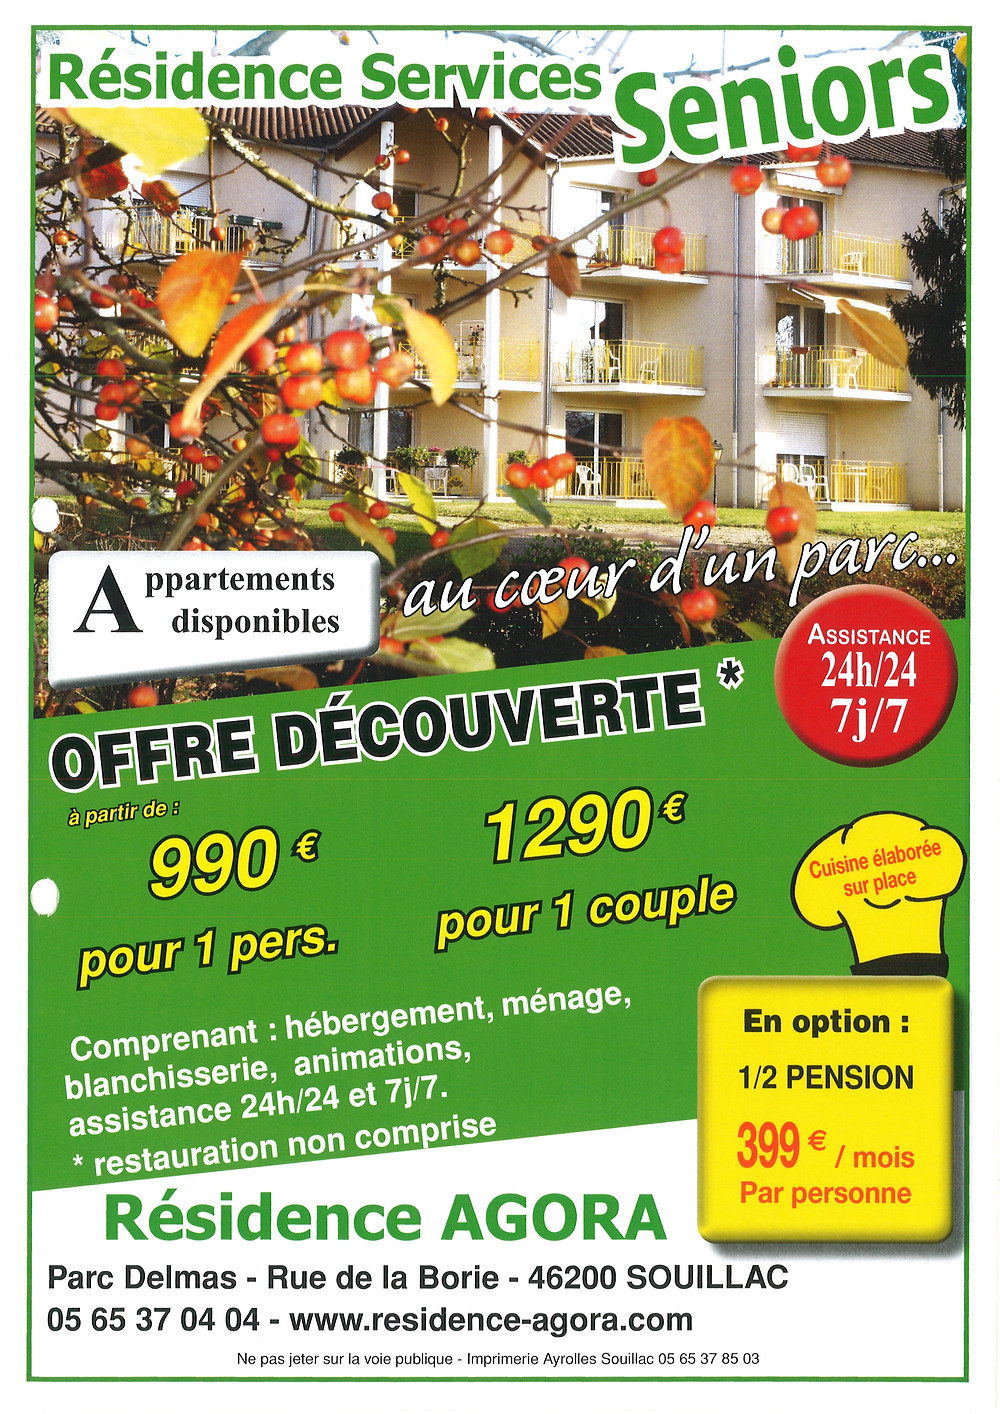 residence services seniors souillac